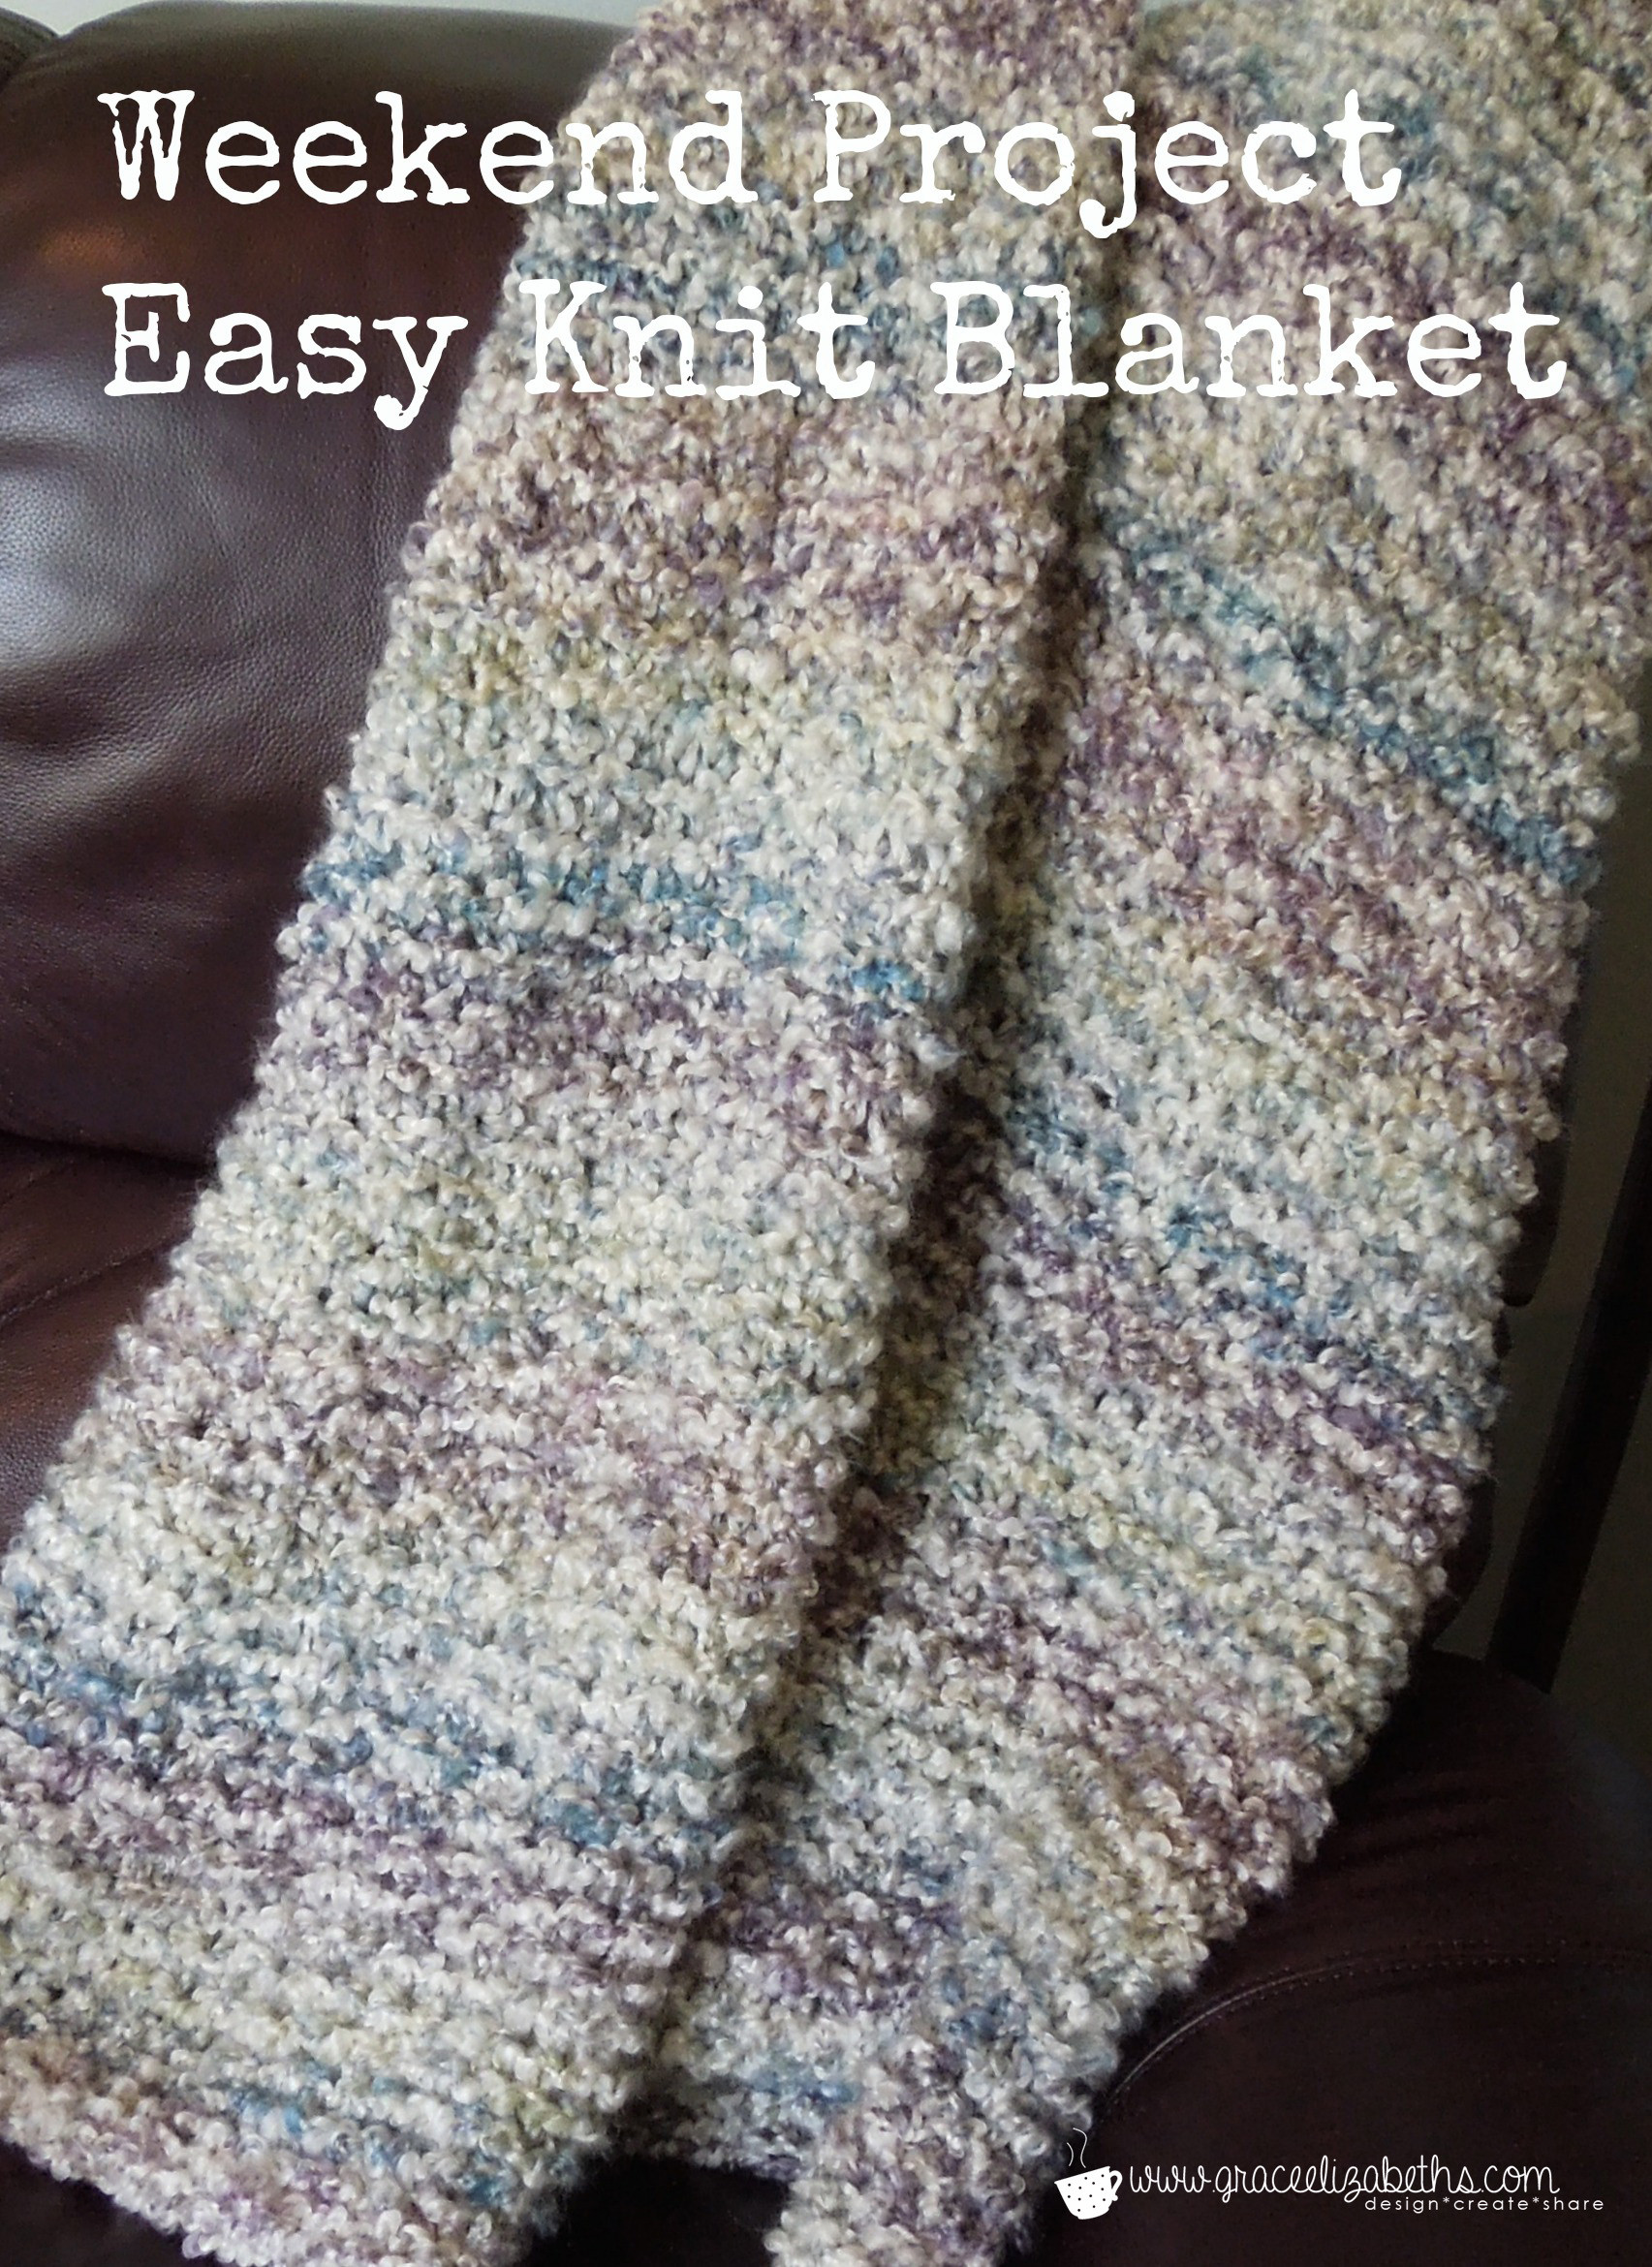 Knitted Blanket Patterns Inspirational Weekend Project Free Easy Knit Blanket Pattern Grace Of Adorable 45 Photos Knitted Blanket Patterns